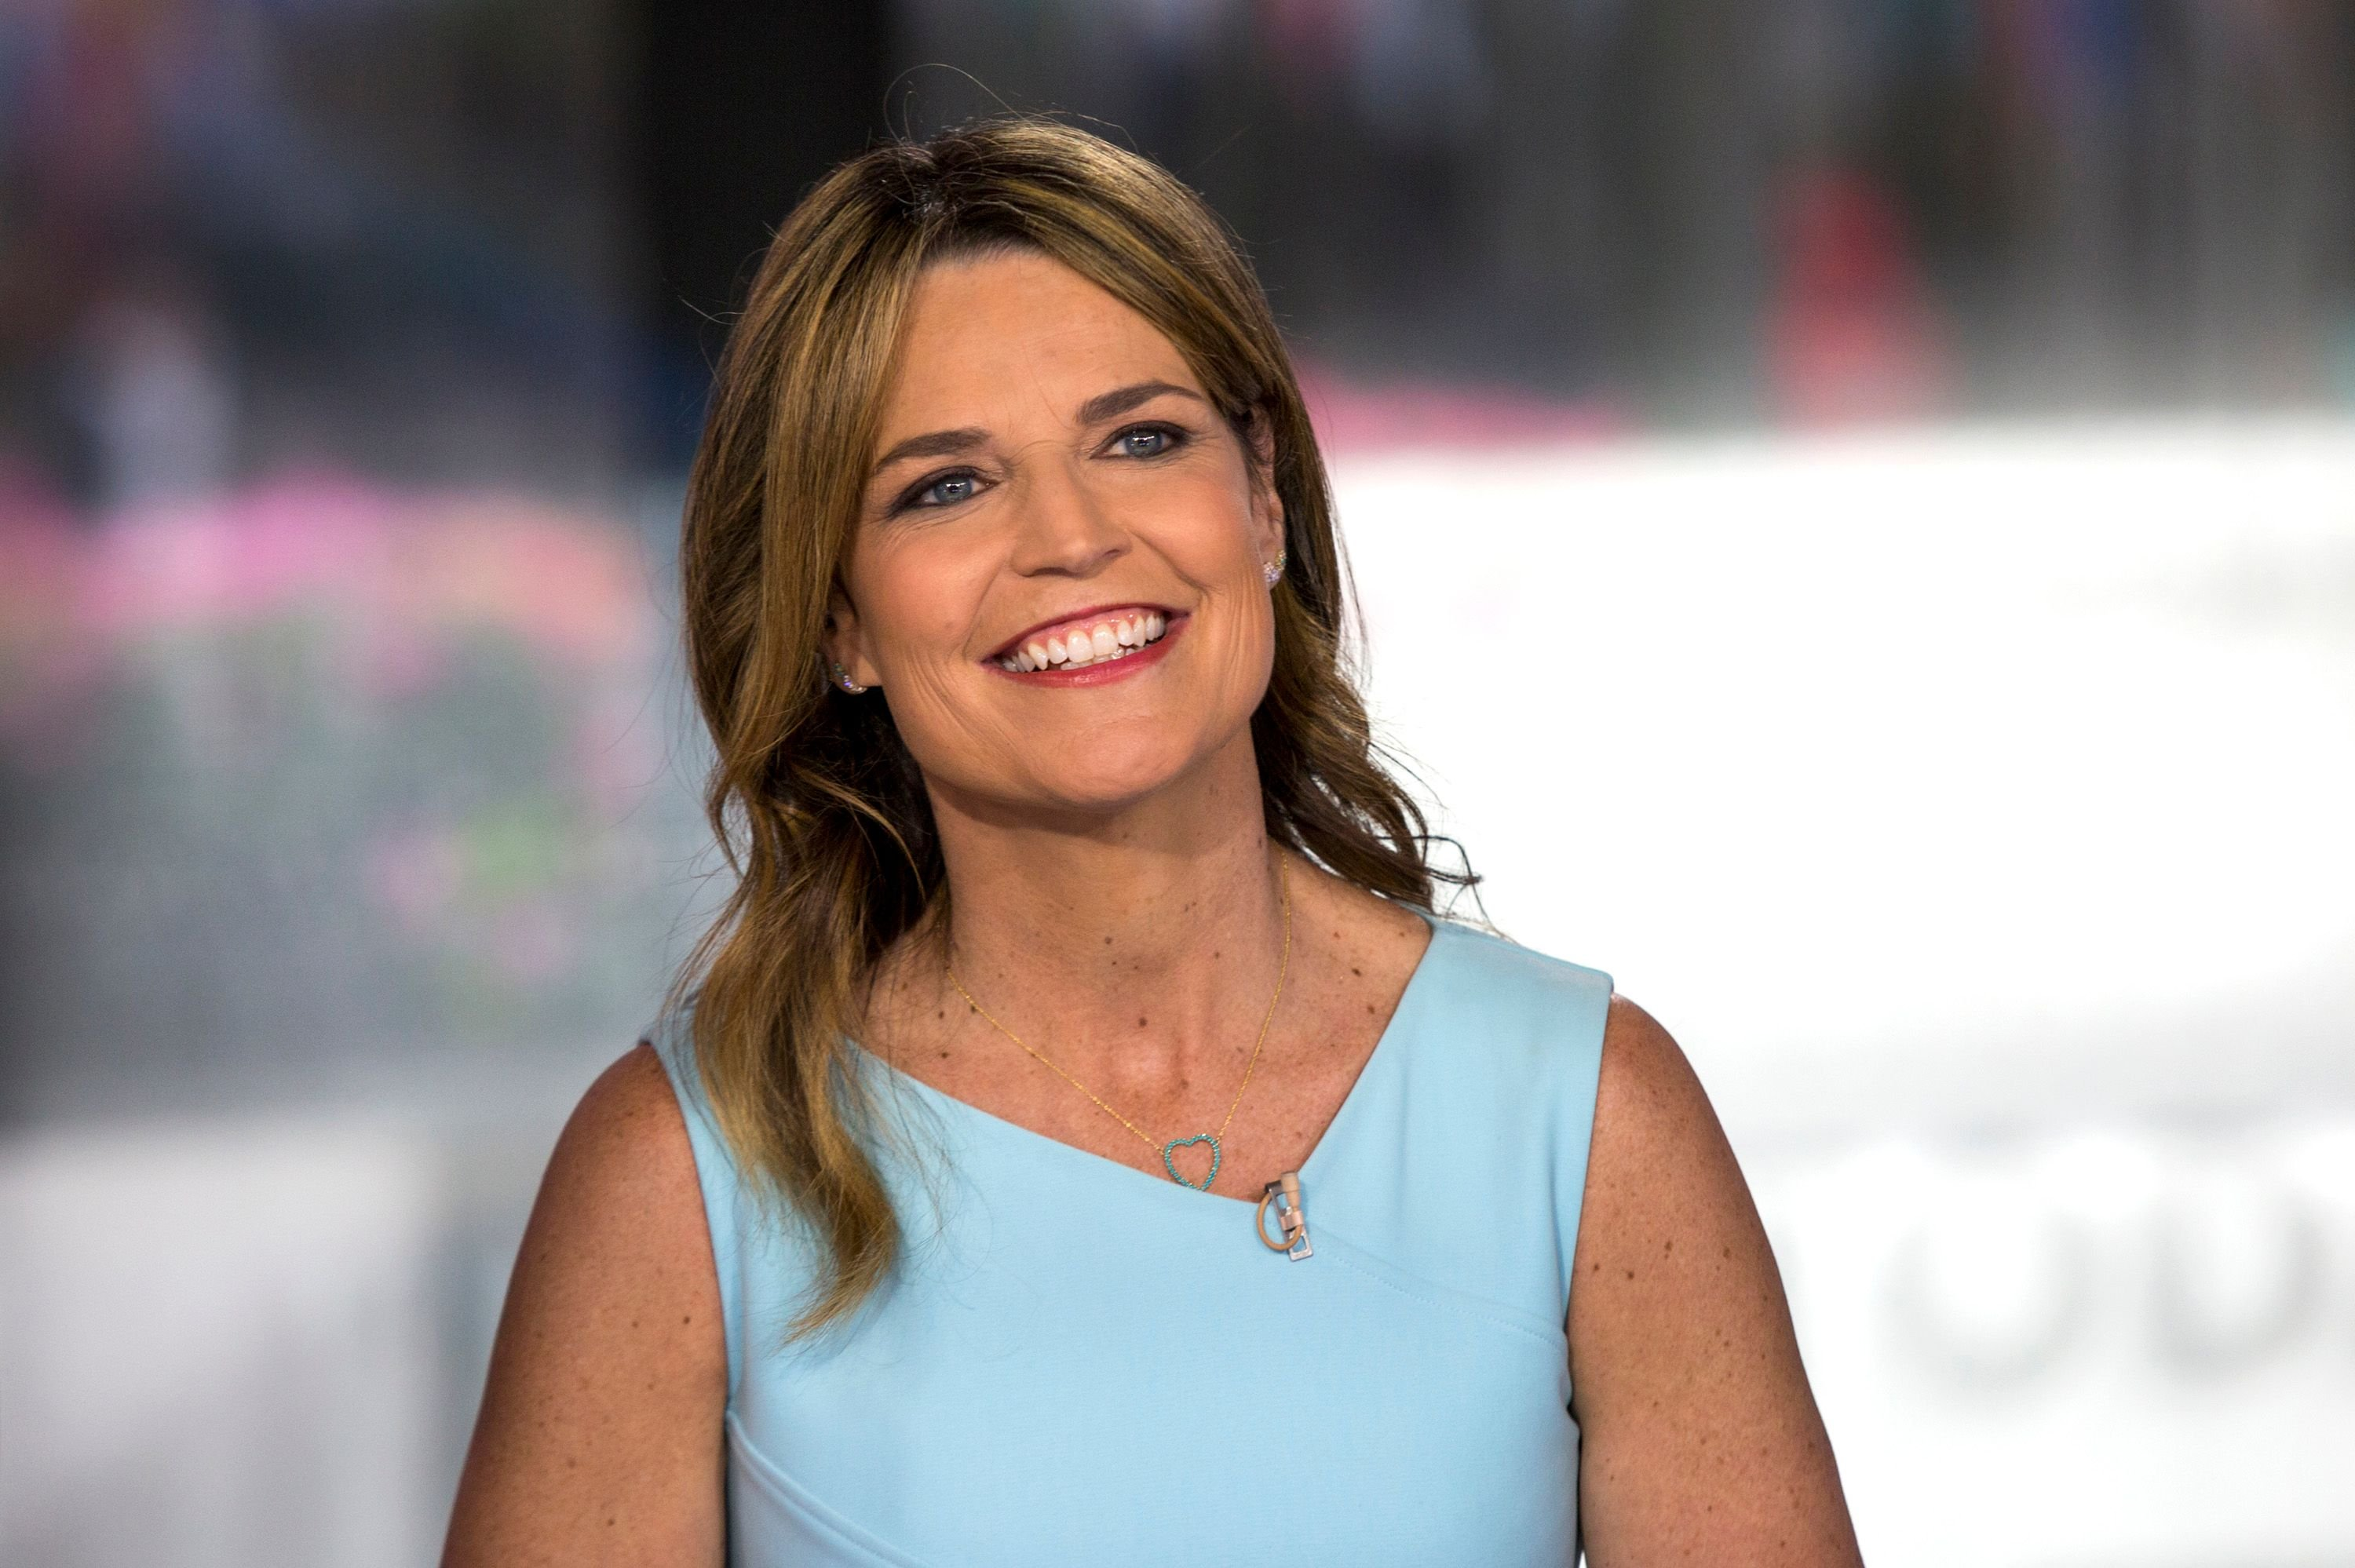 Savannah Guthrie at Today - Season 67 on Wednesday June 13, 2018 | Photo: Photo: Getty Images